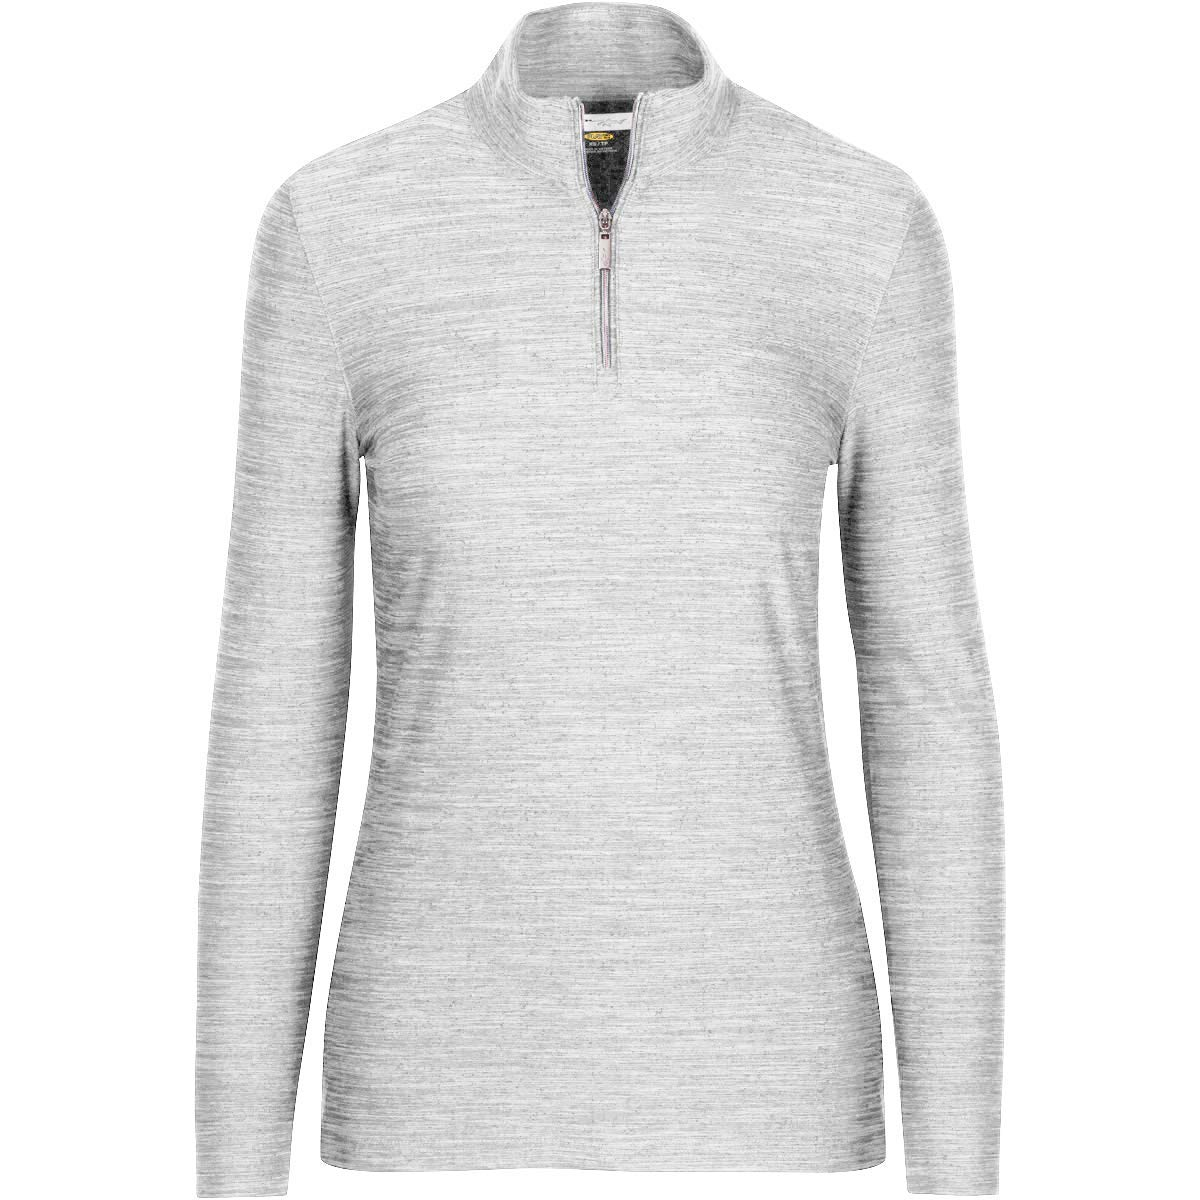 White Greg Norman Women's L s Heathered 1 4zip Mock